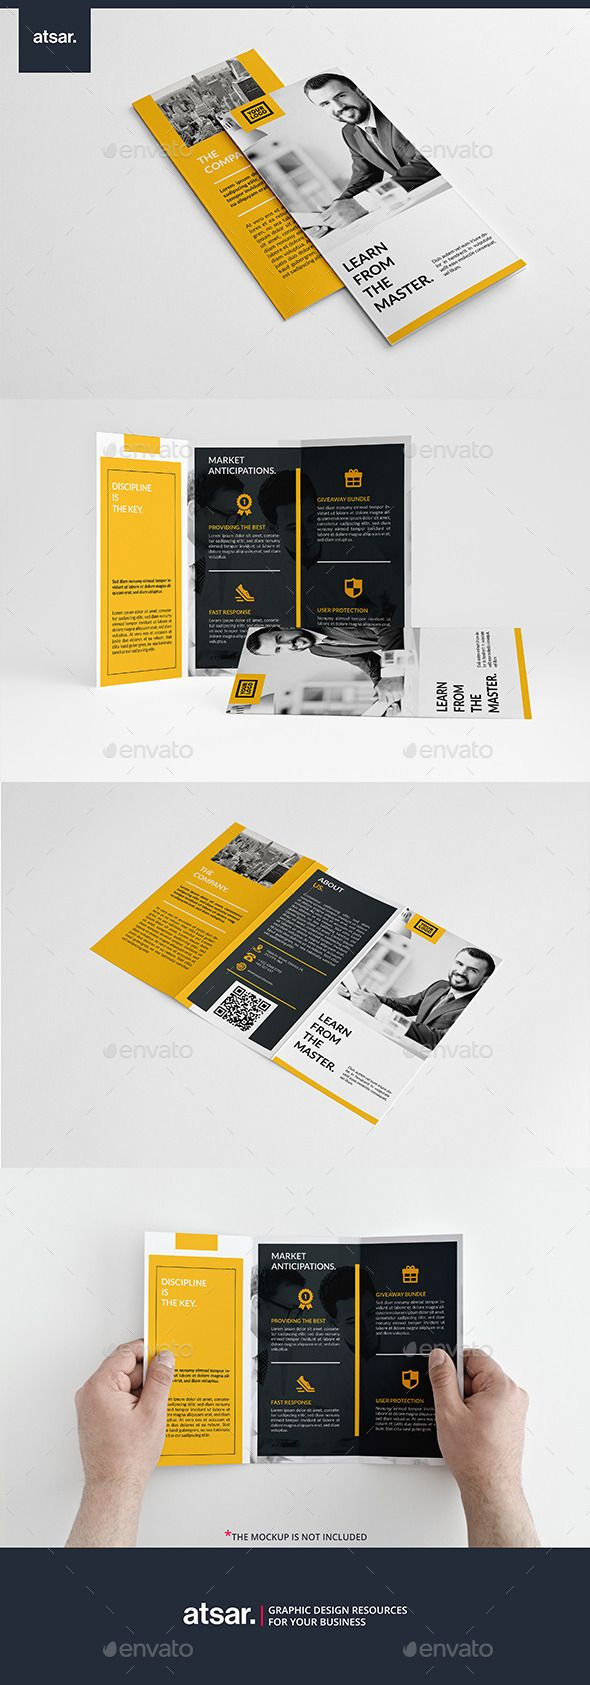 Best Brochure Inspiration Images On   Brochures